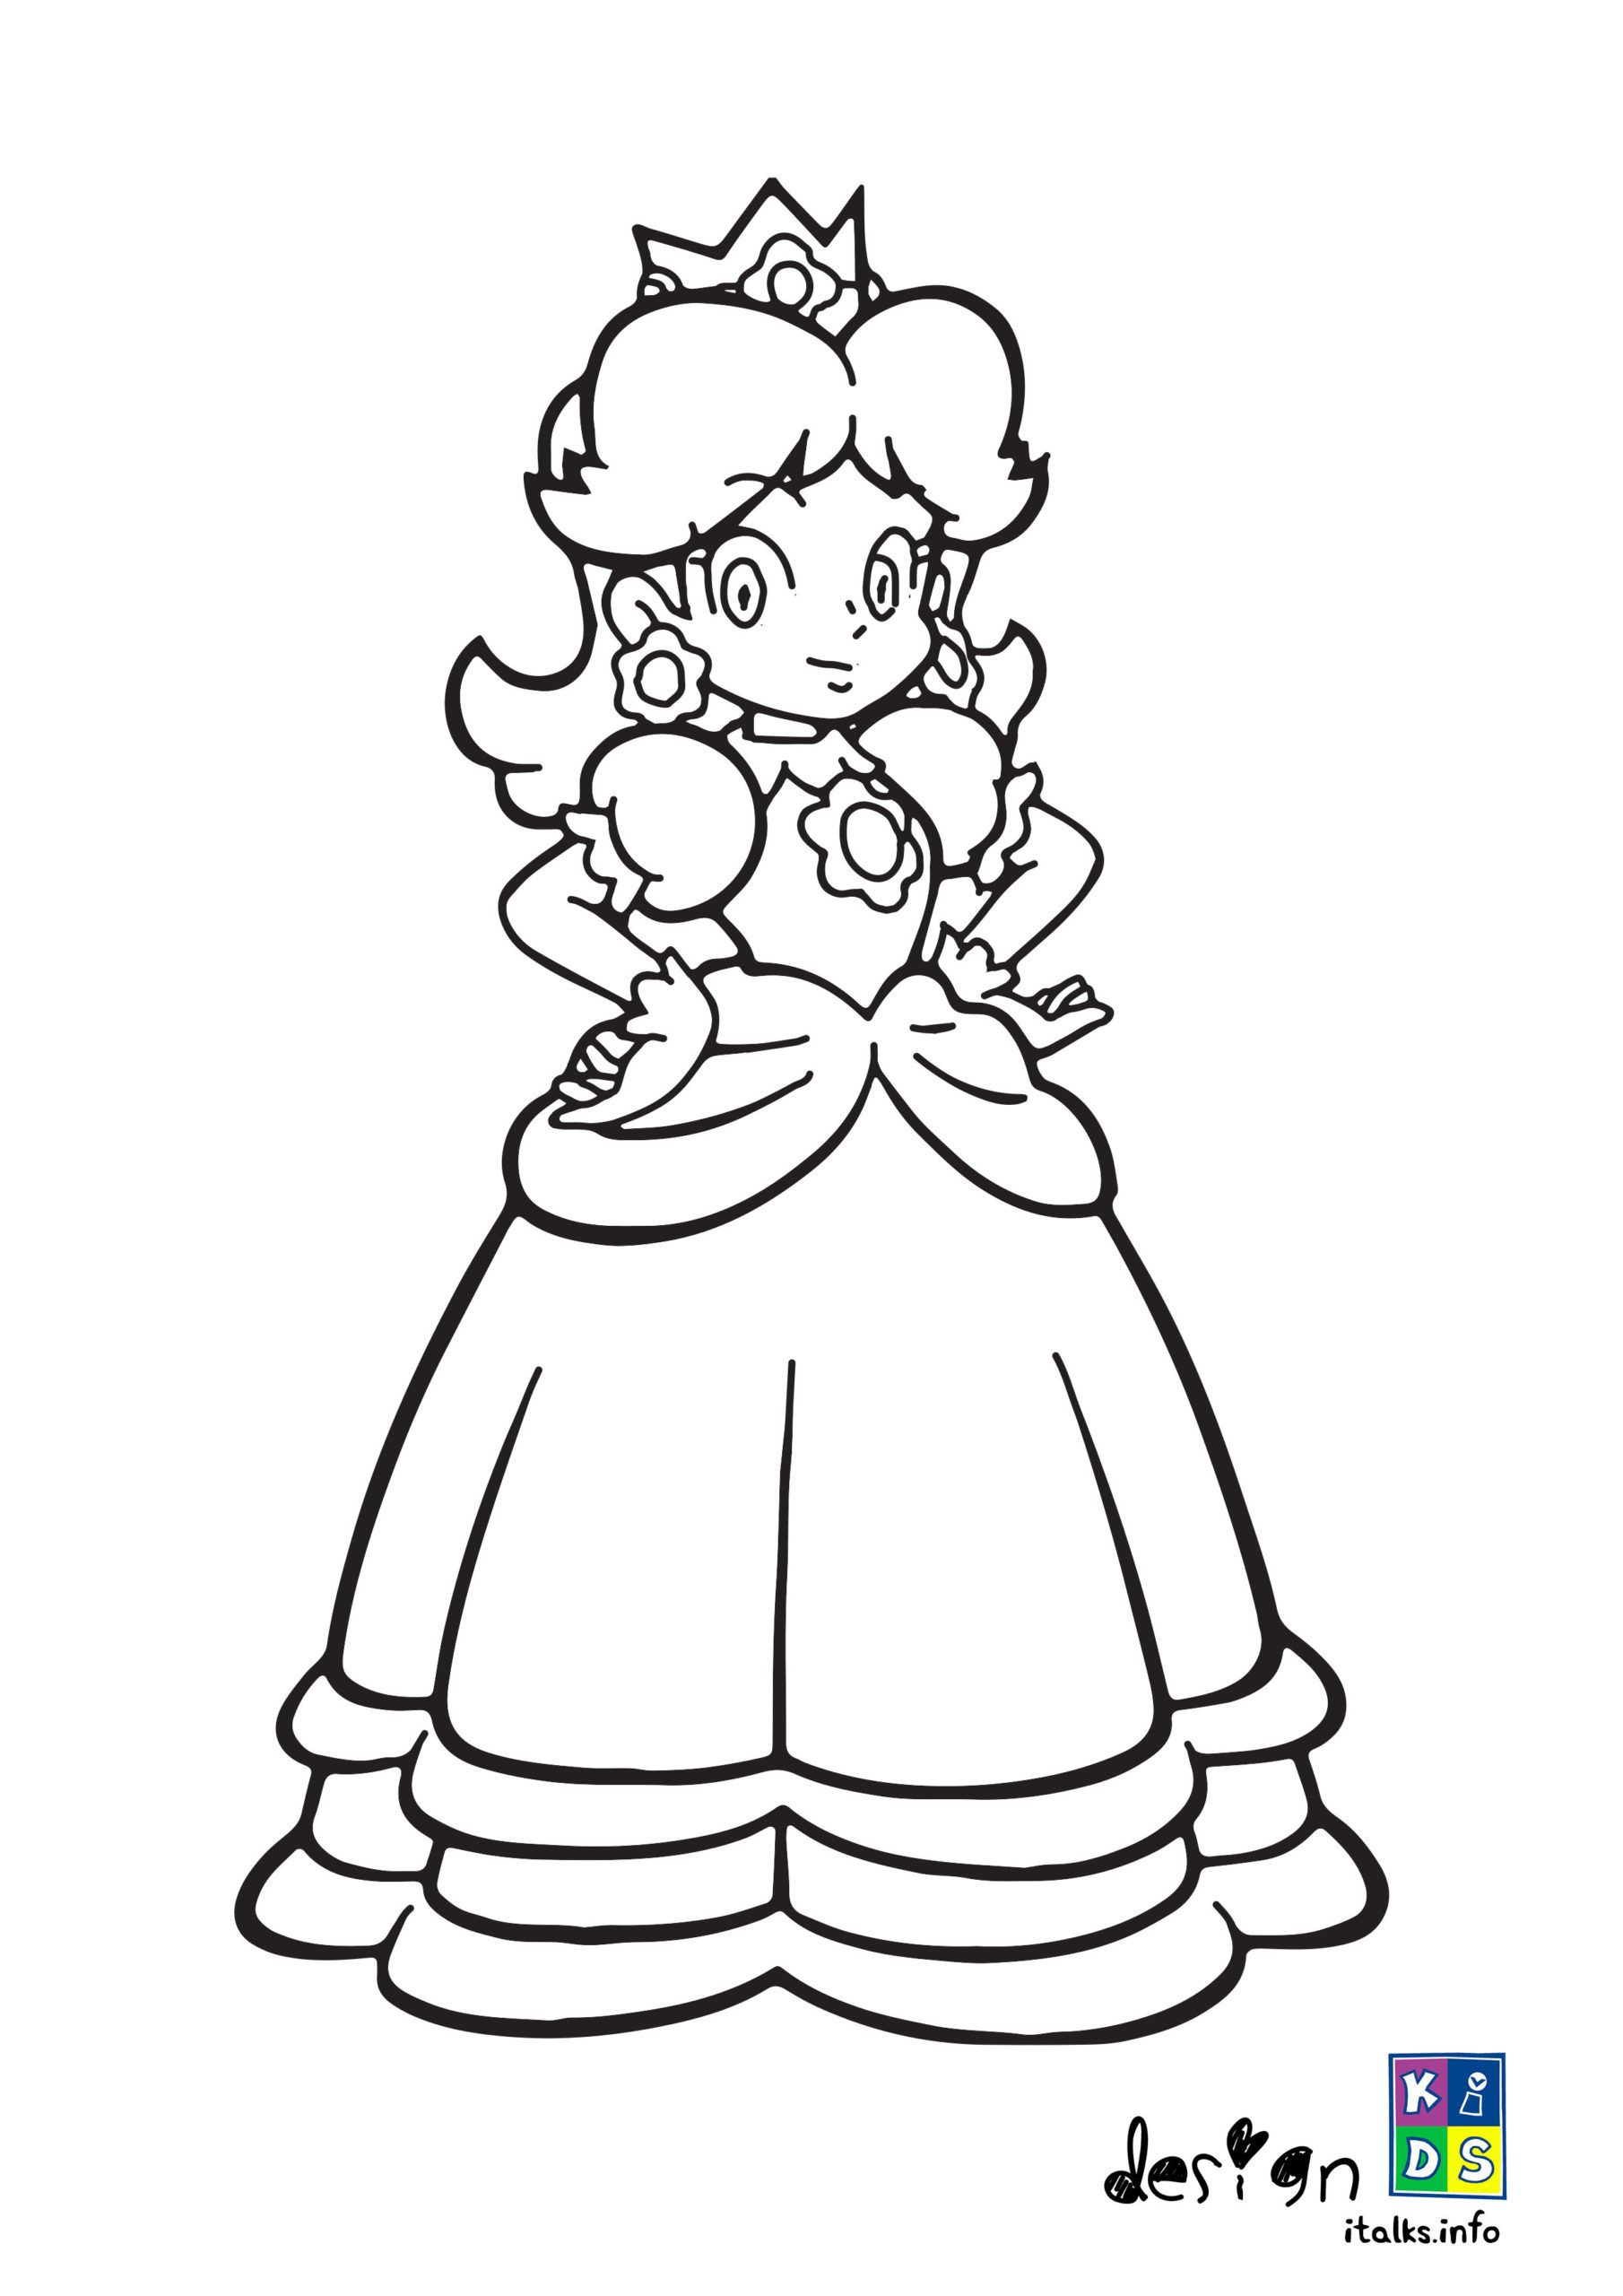 Mario Coloring Pages Daisy - Thekidsworksheet